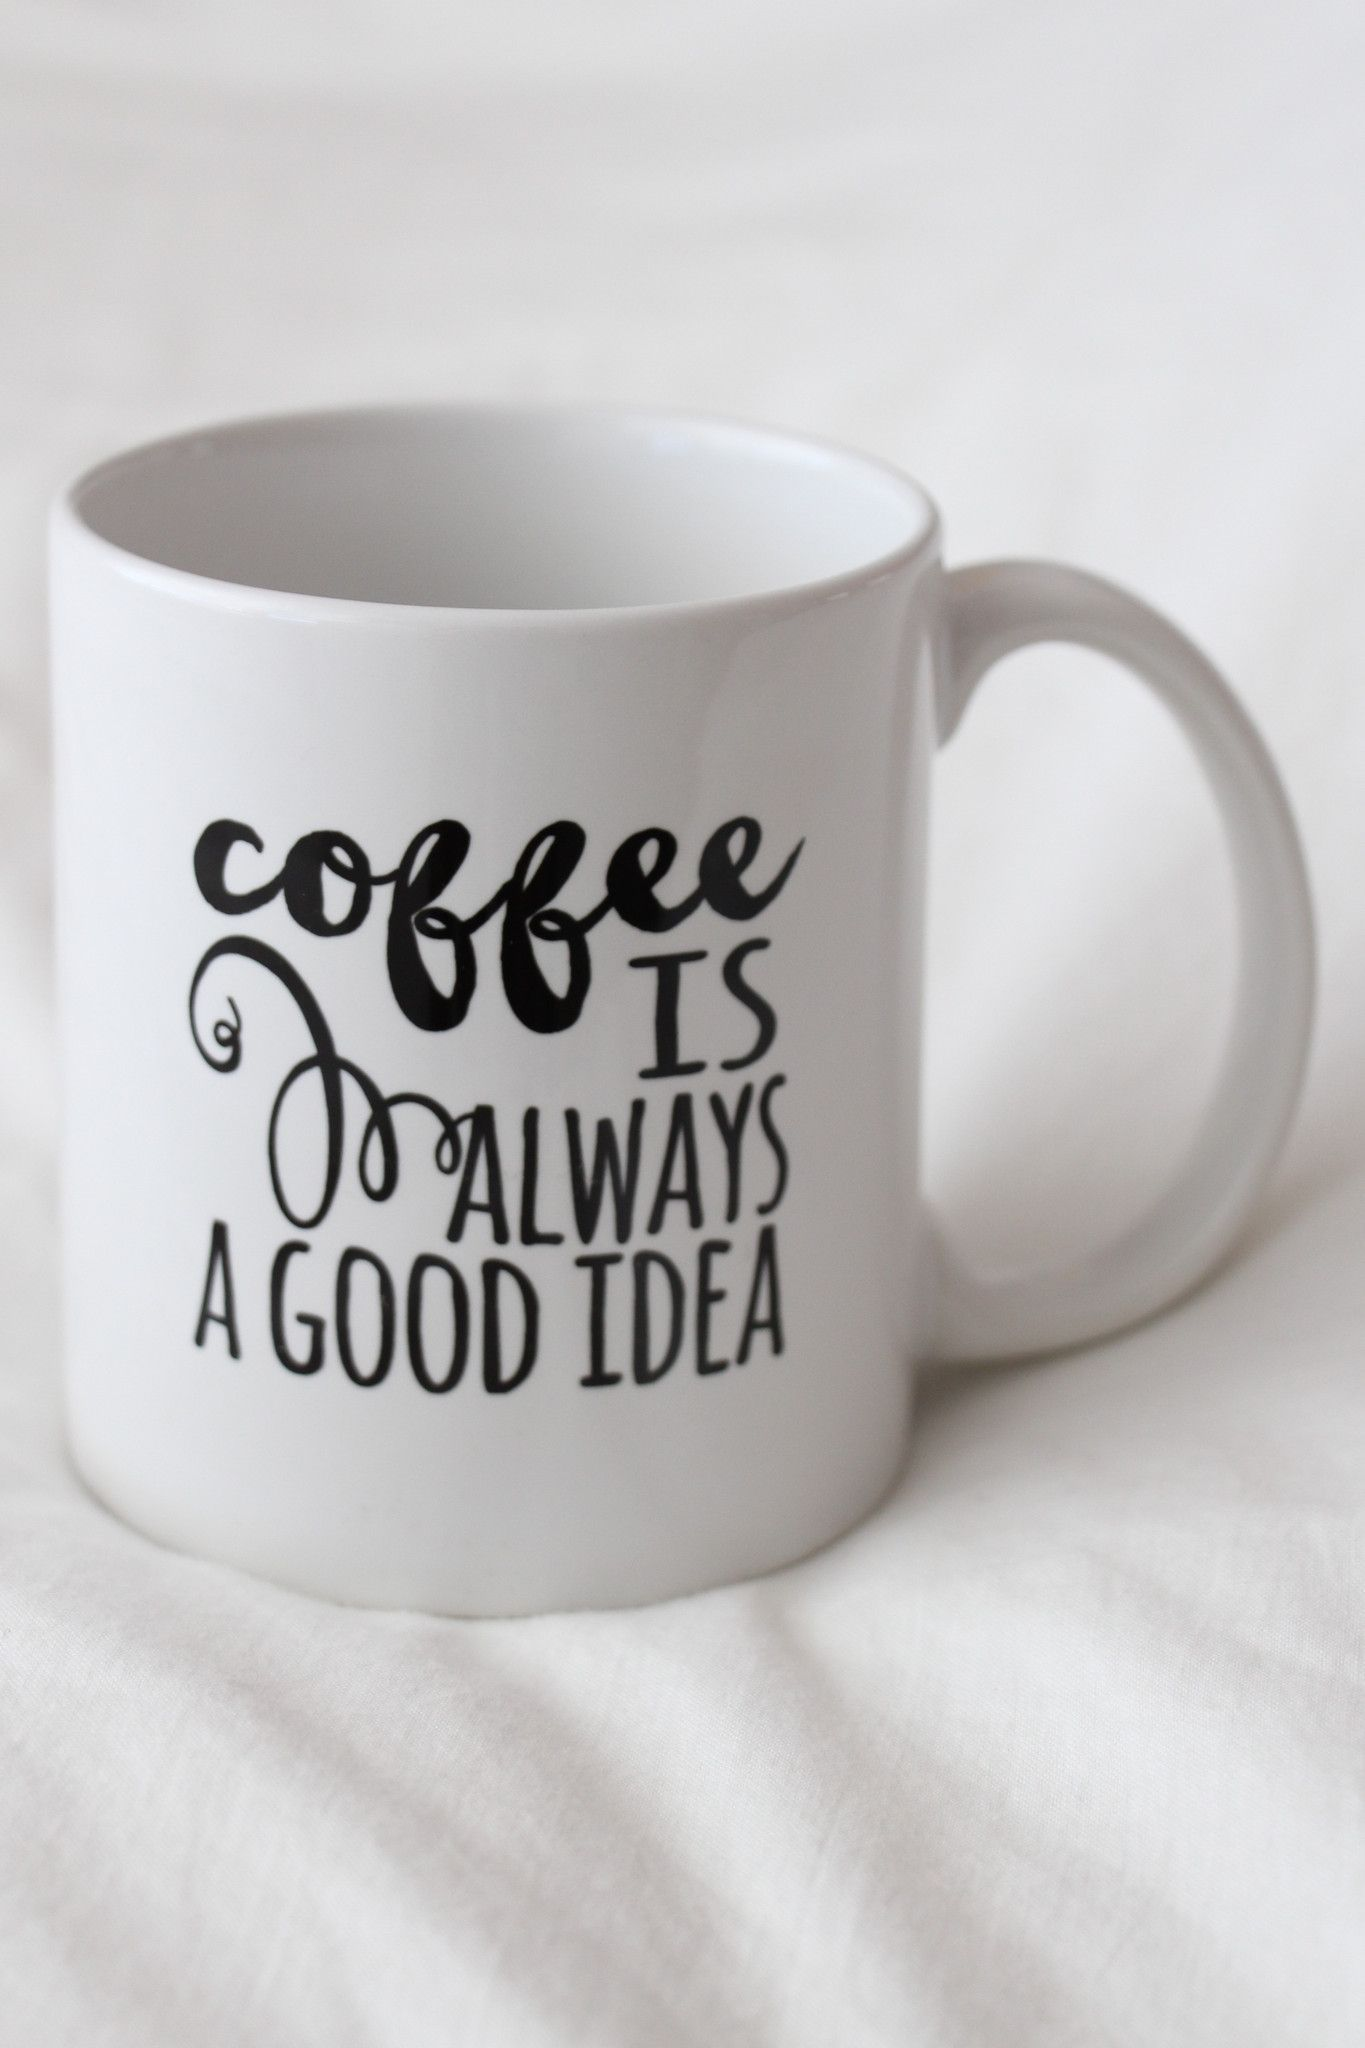 coffee is always a good idea mug shops pinterest tassen bemalen keramik bemalen und kaffee. Black Bedroom Furniture Sets. Home Design Ideas